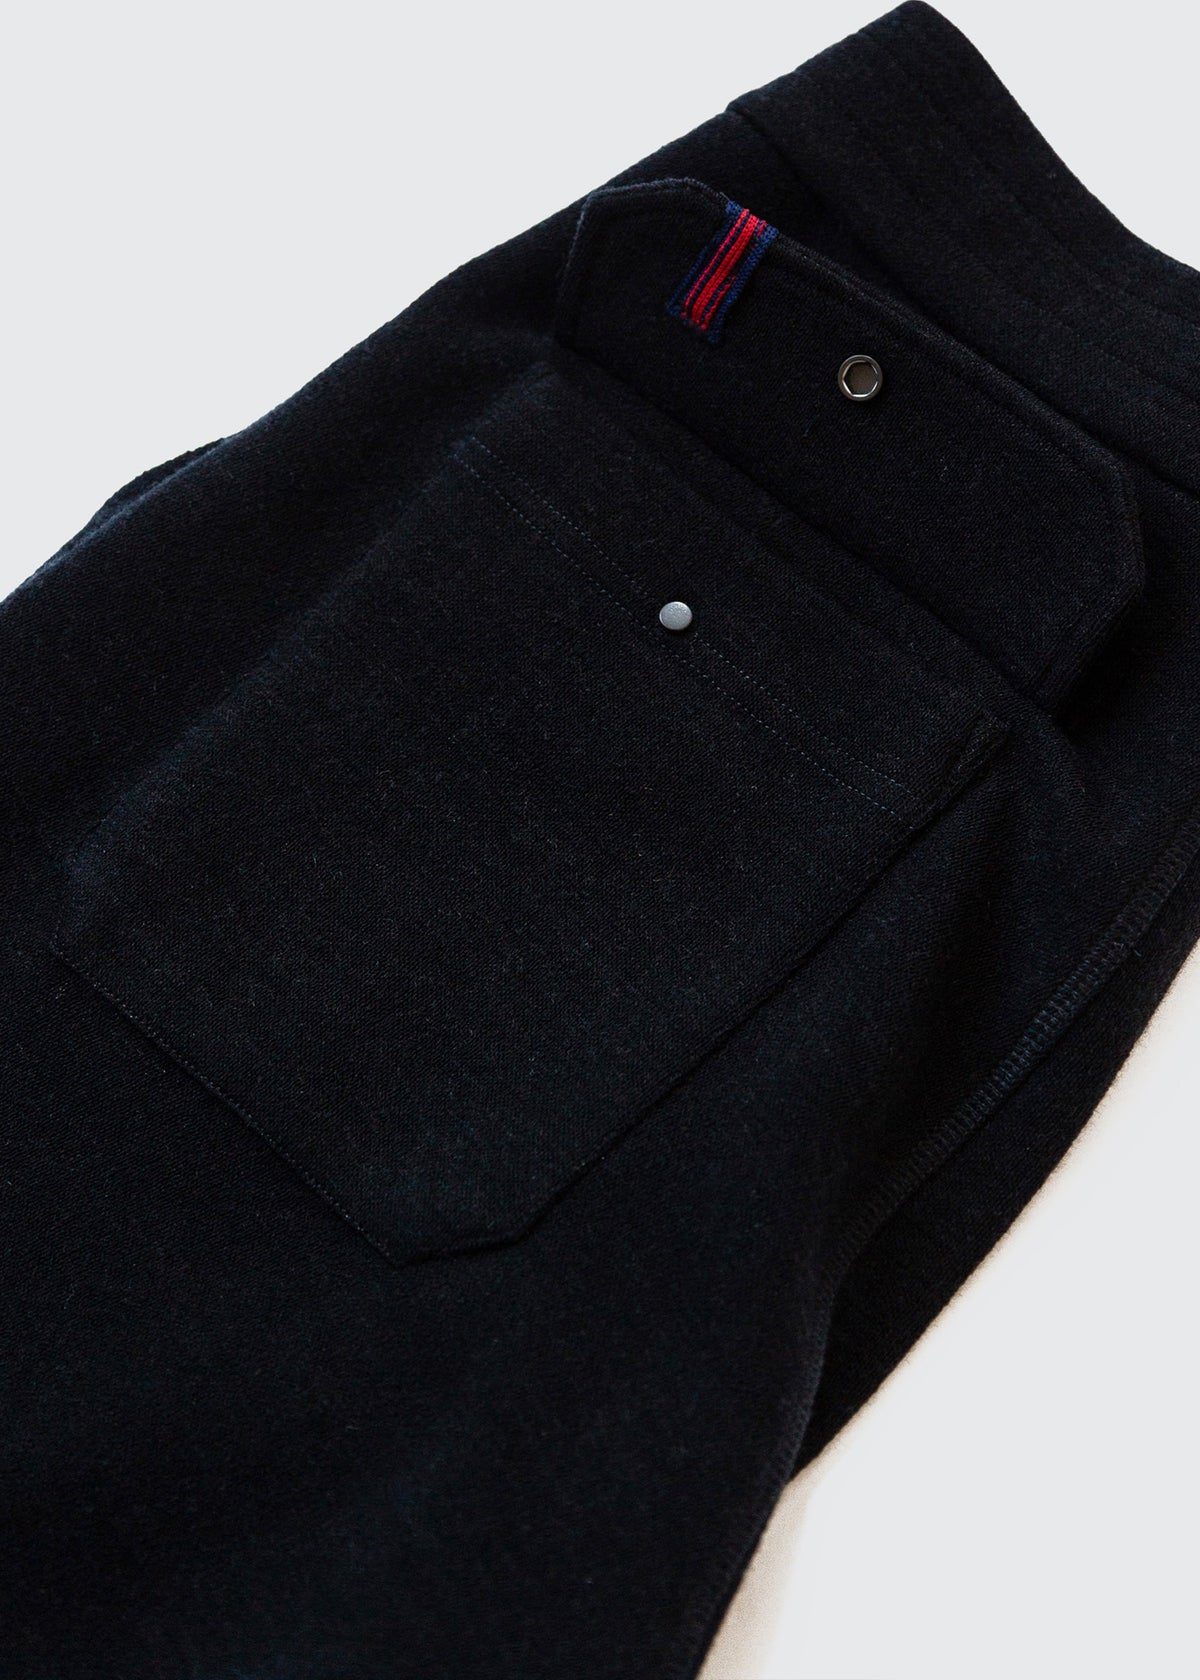 203 - NYLON TROUSER - BLACK - Wilson & Willy's - MPLS Neighbor Goods